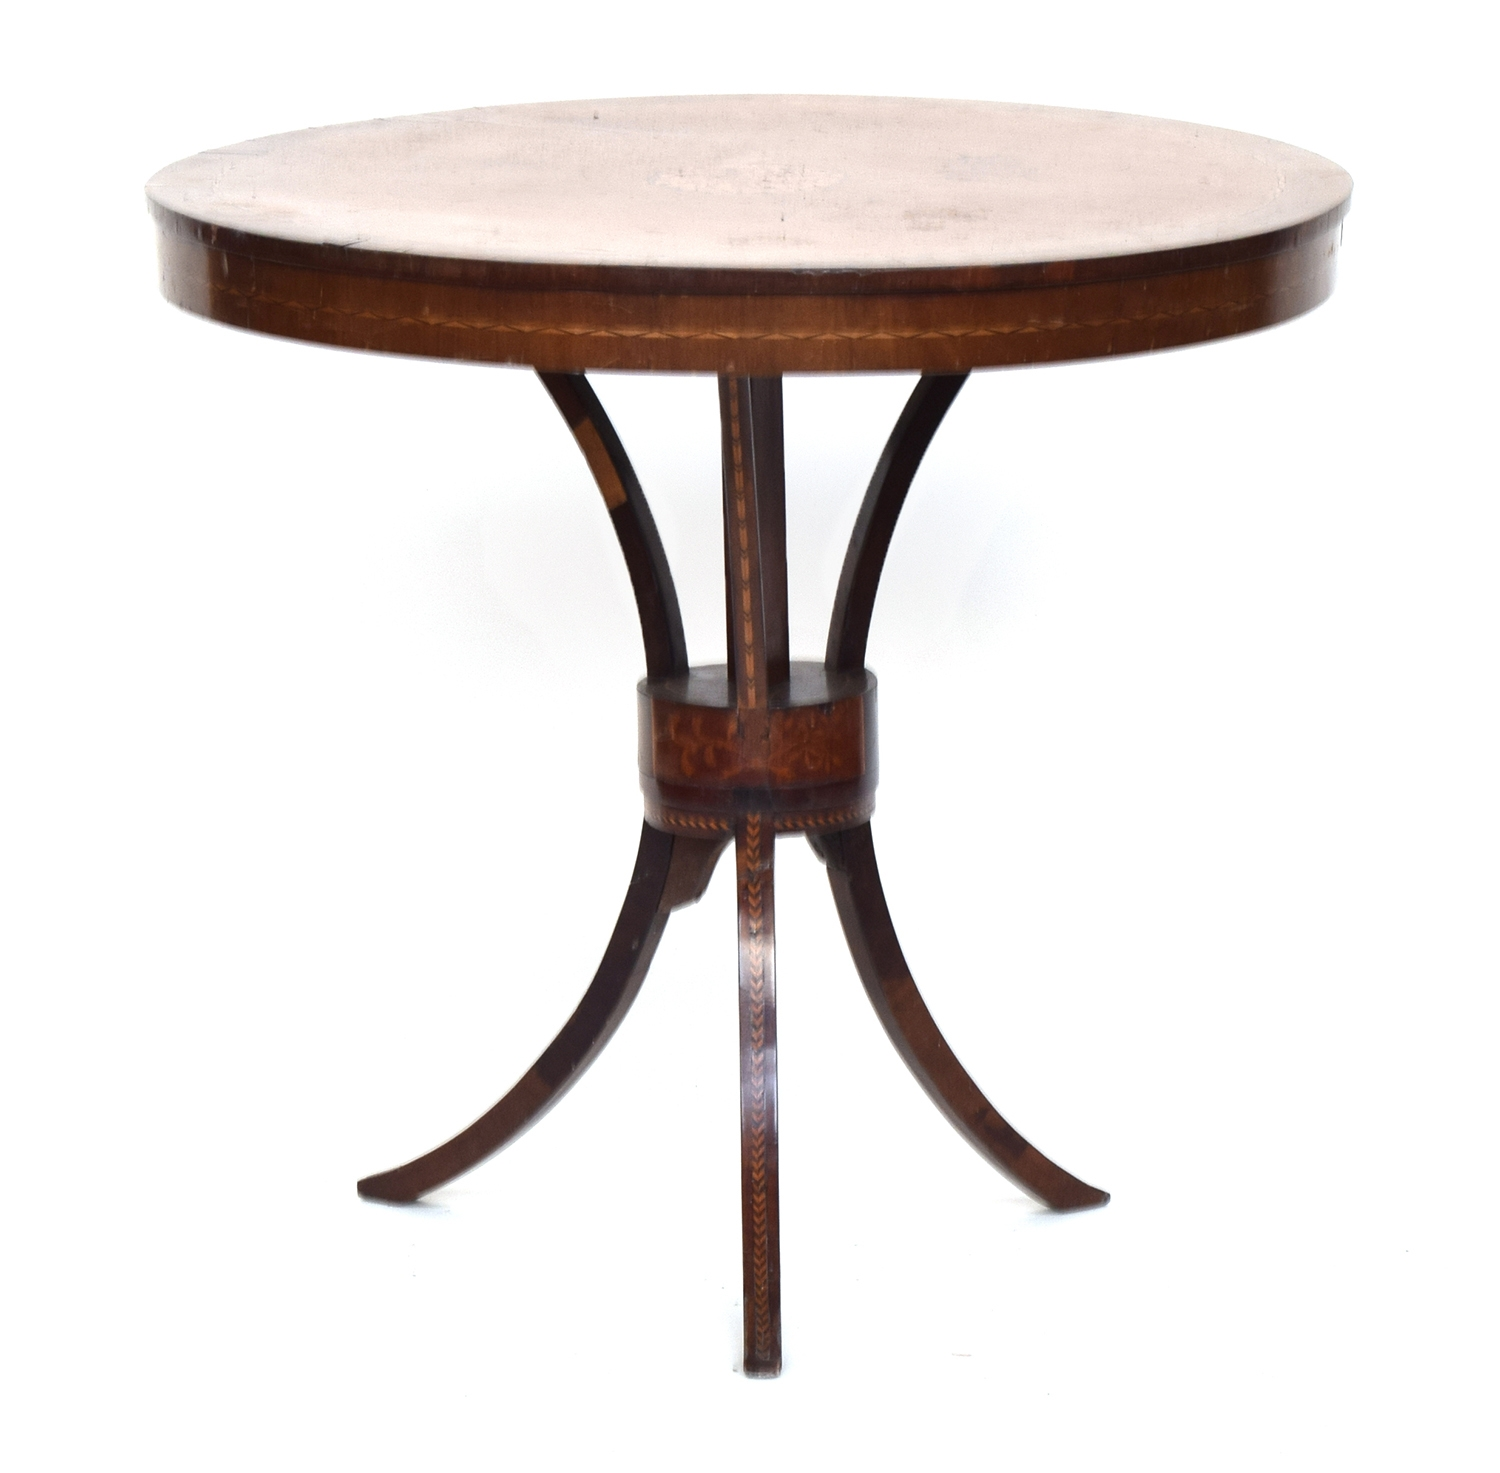 A Regency mahogany and marquetry centre table, on swept tripod base, intricate foliate central